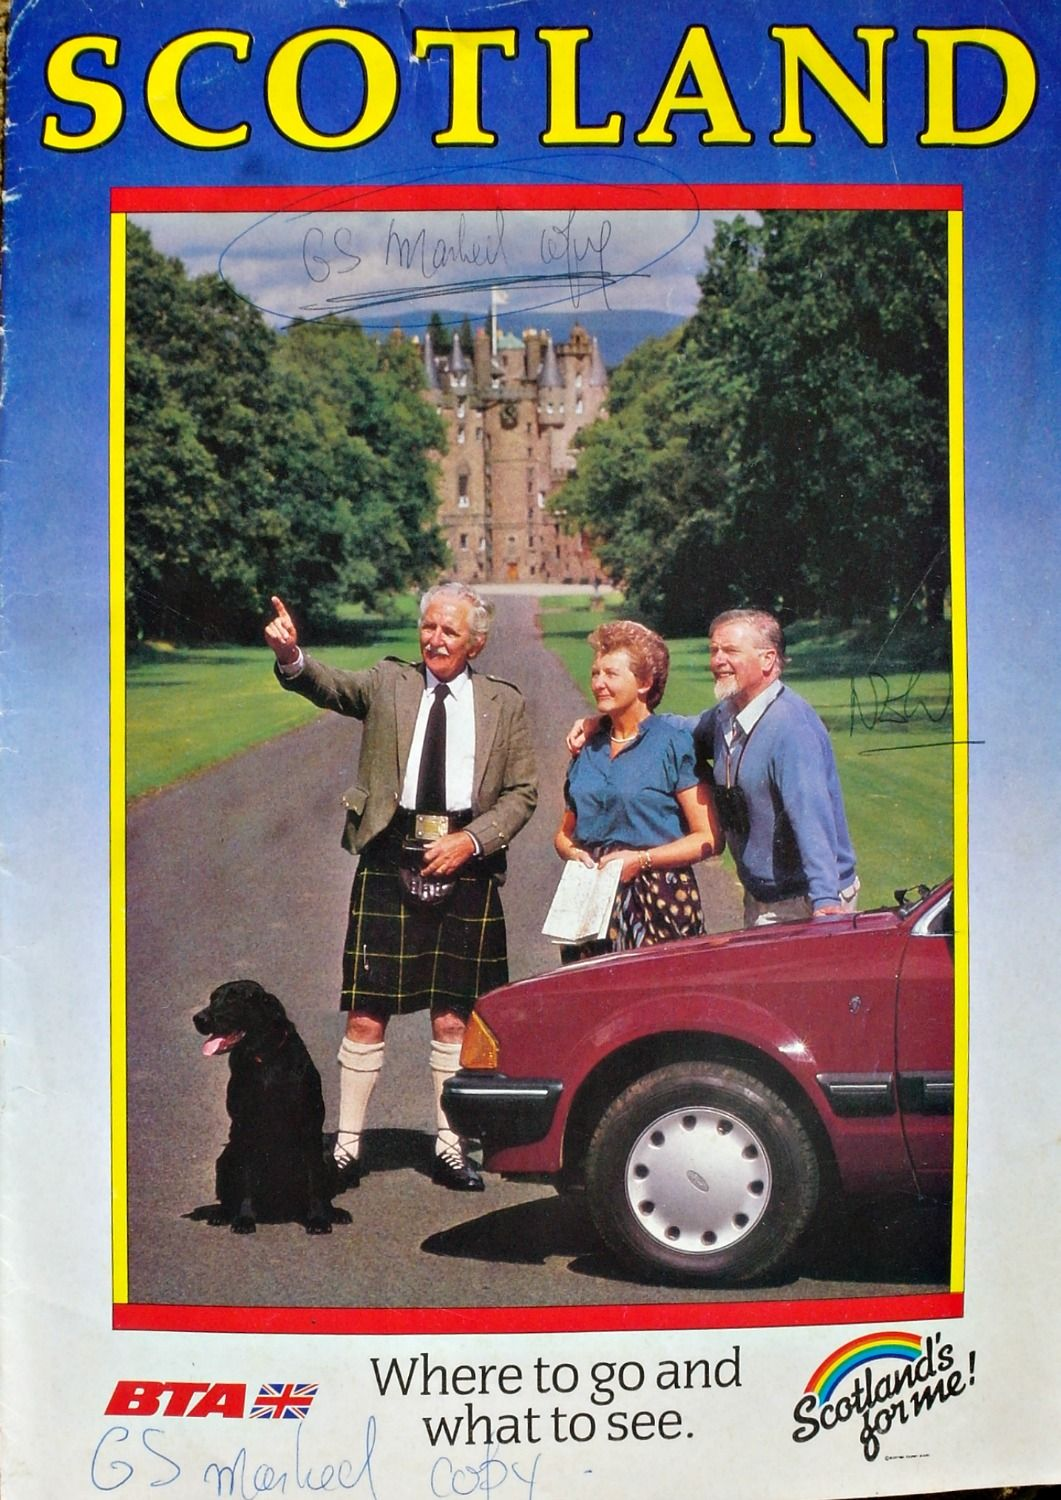 The guide is saying 'Och, look, there's the sun up there. You'd be better off outside enjoying it, instead of visiting a fusty auld castle'.